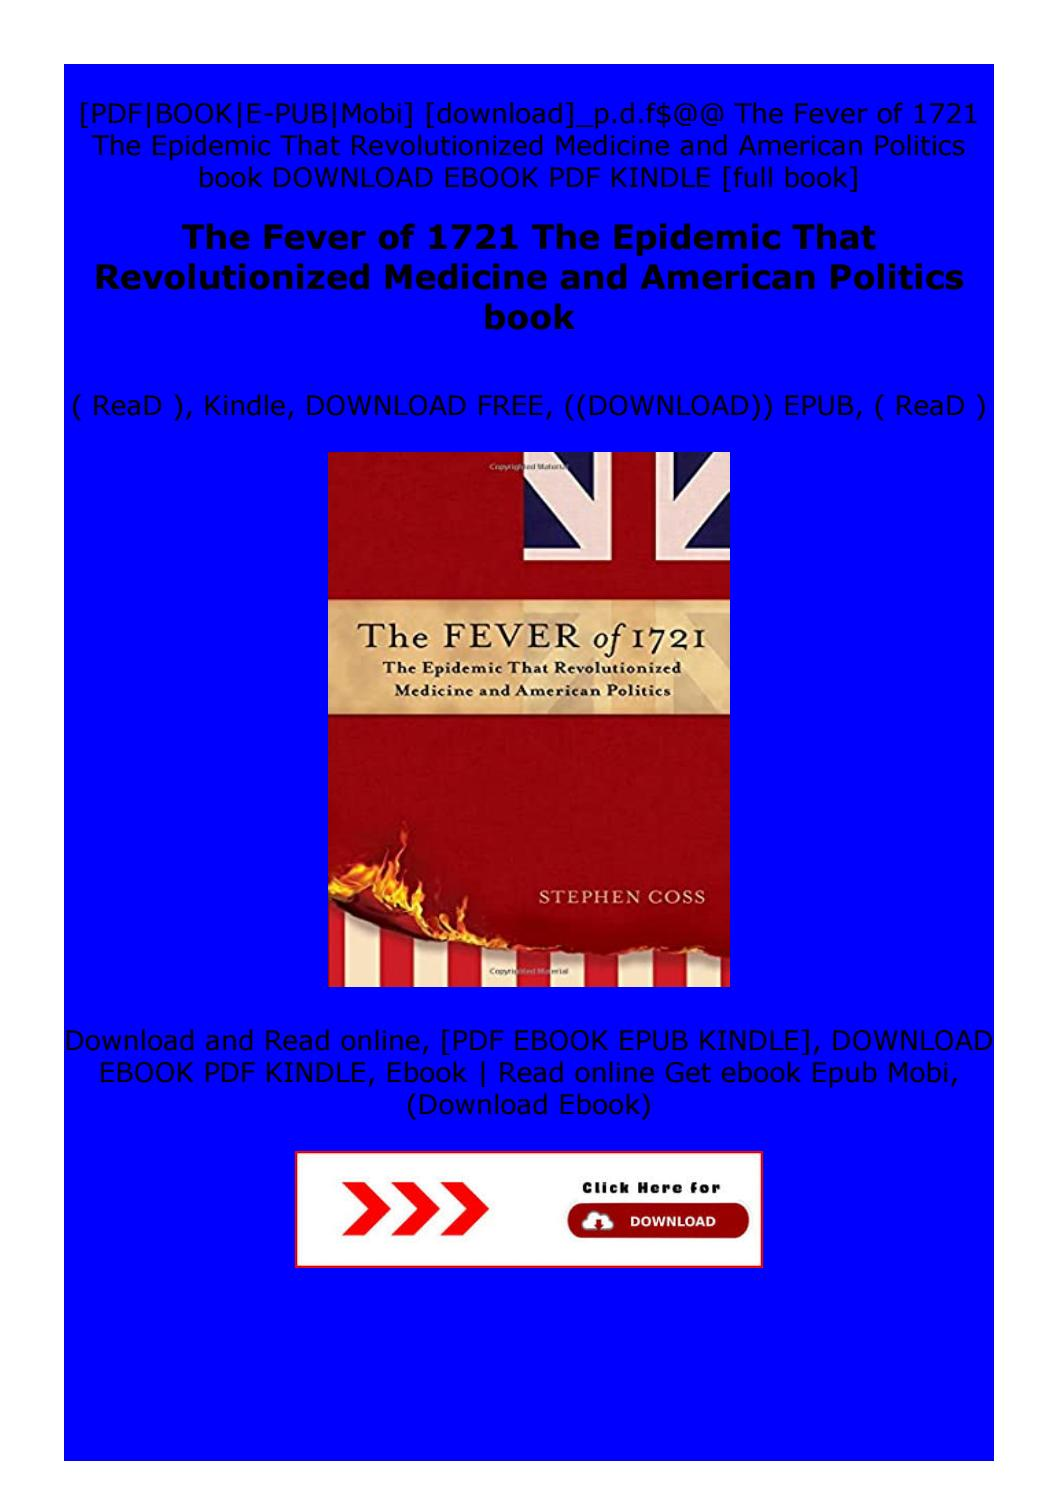 Pdf The Fever Of 1721 The Epidemic That Revolutionized Medicine And American Politics Book By Axzzdsfdfdsf Issuu